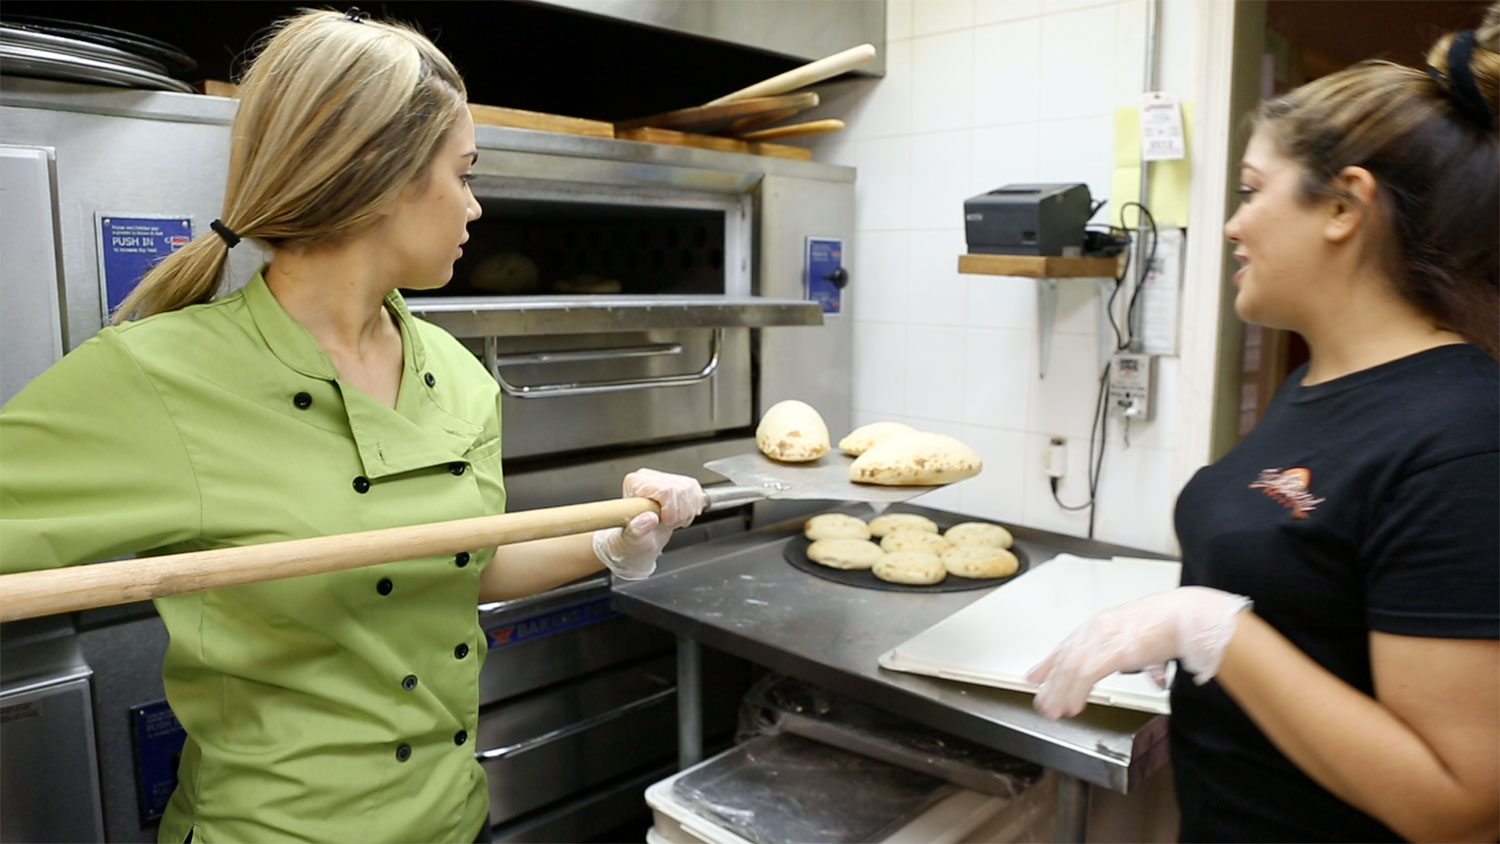 The Esendemir Sisters baking bread at Flatbread Grill.